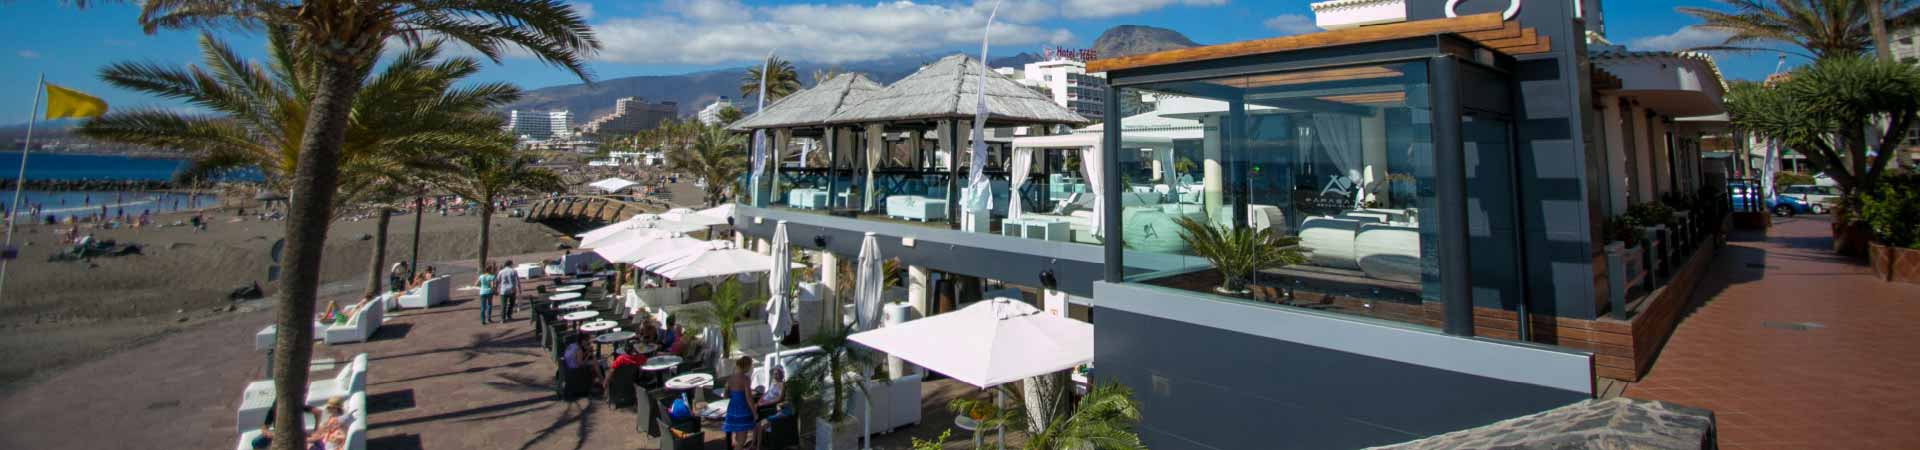 http://www.goodmorningtenerife.com/wp-content/uploads/2015/07/01_slide_papagayo-beach-club-1920x450-1.jpg